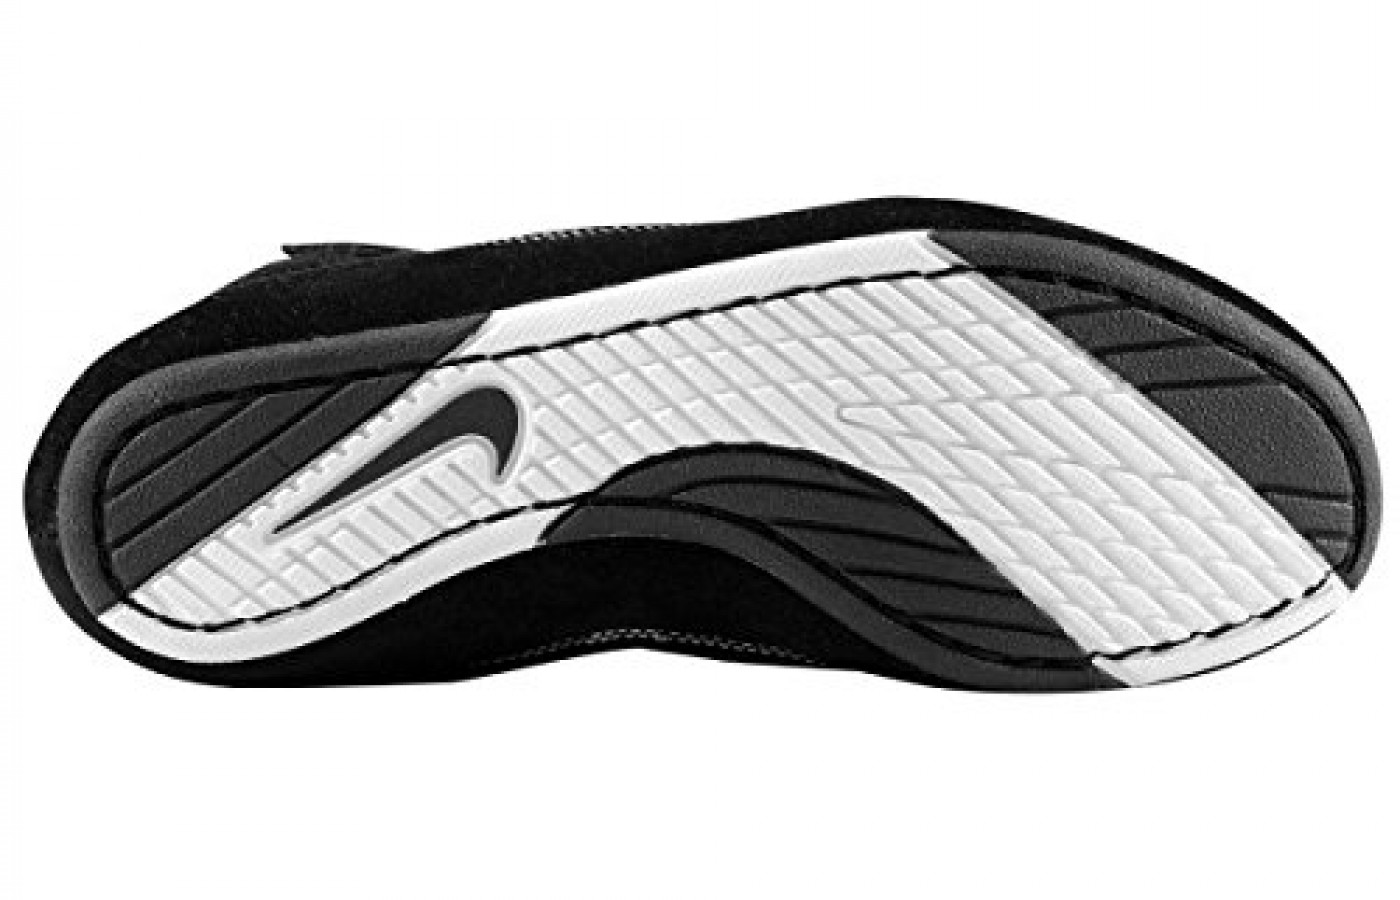 nike speedsweep vii grip